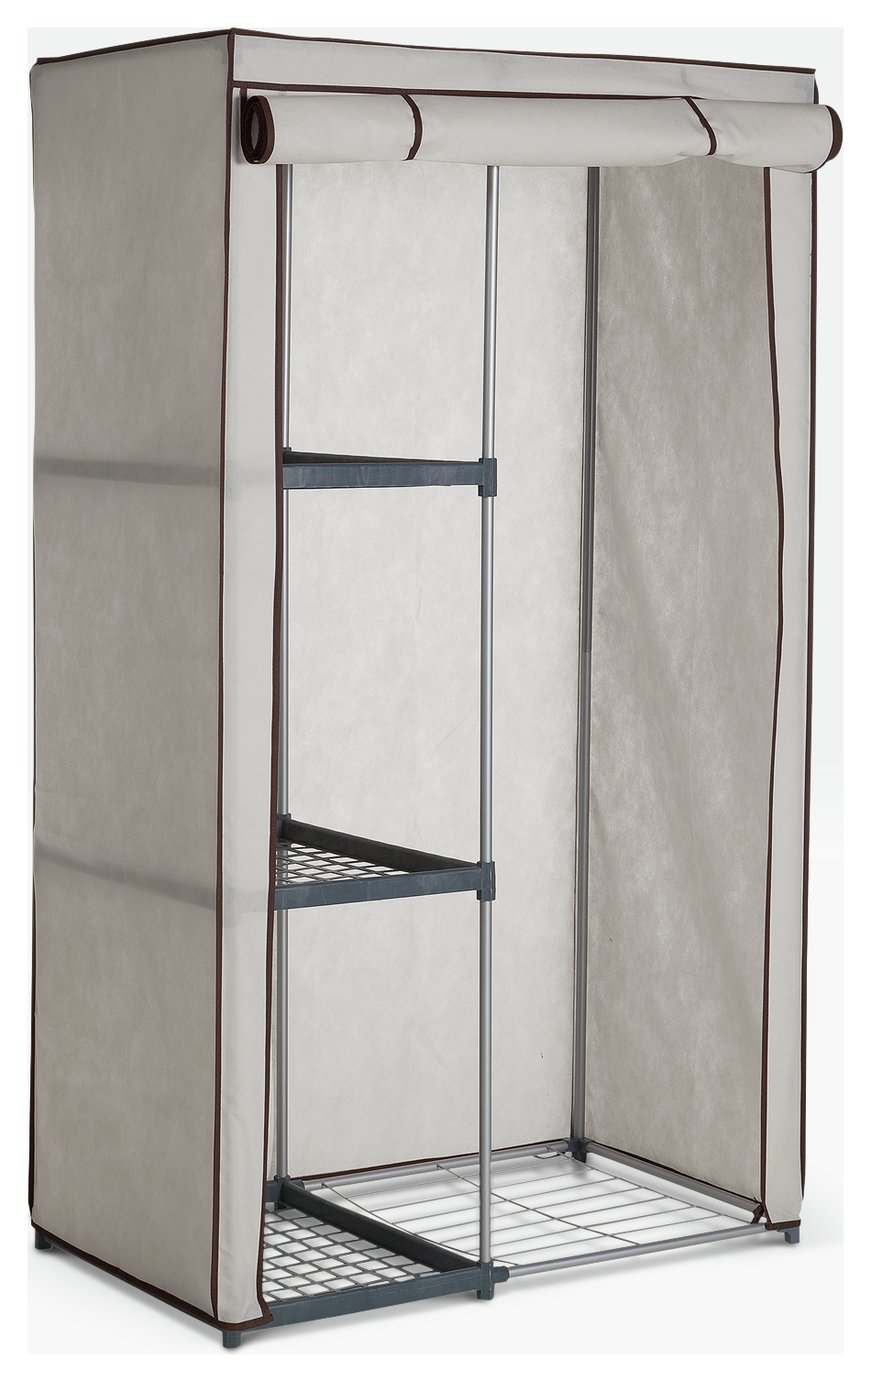 Argos Home Metal and Polycotton Single Wardrobe - Cream